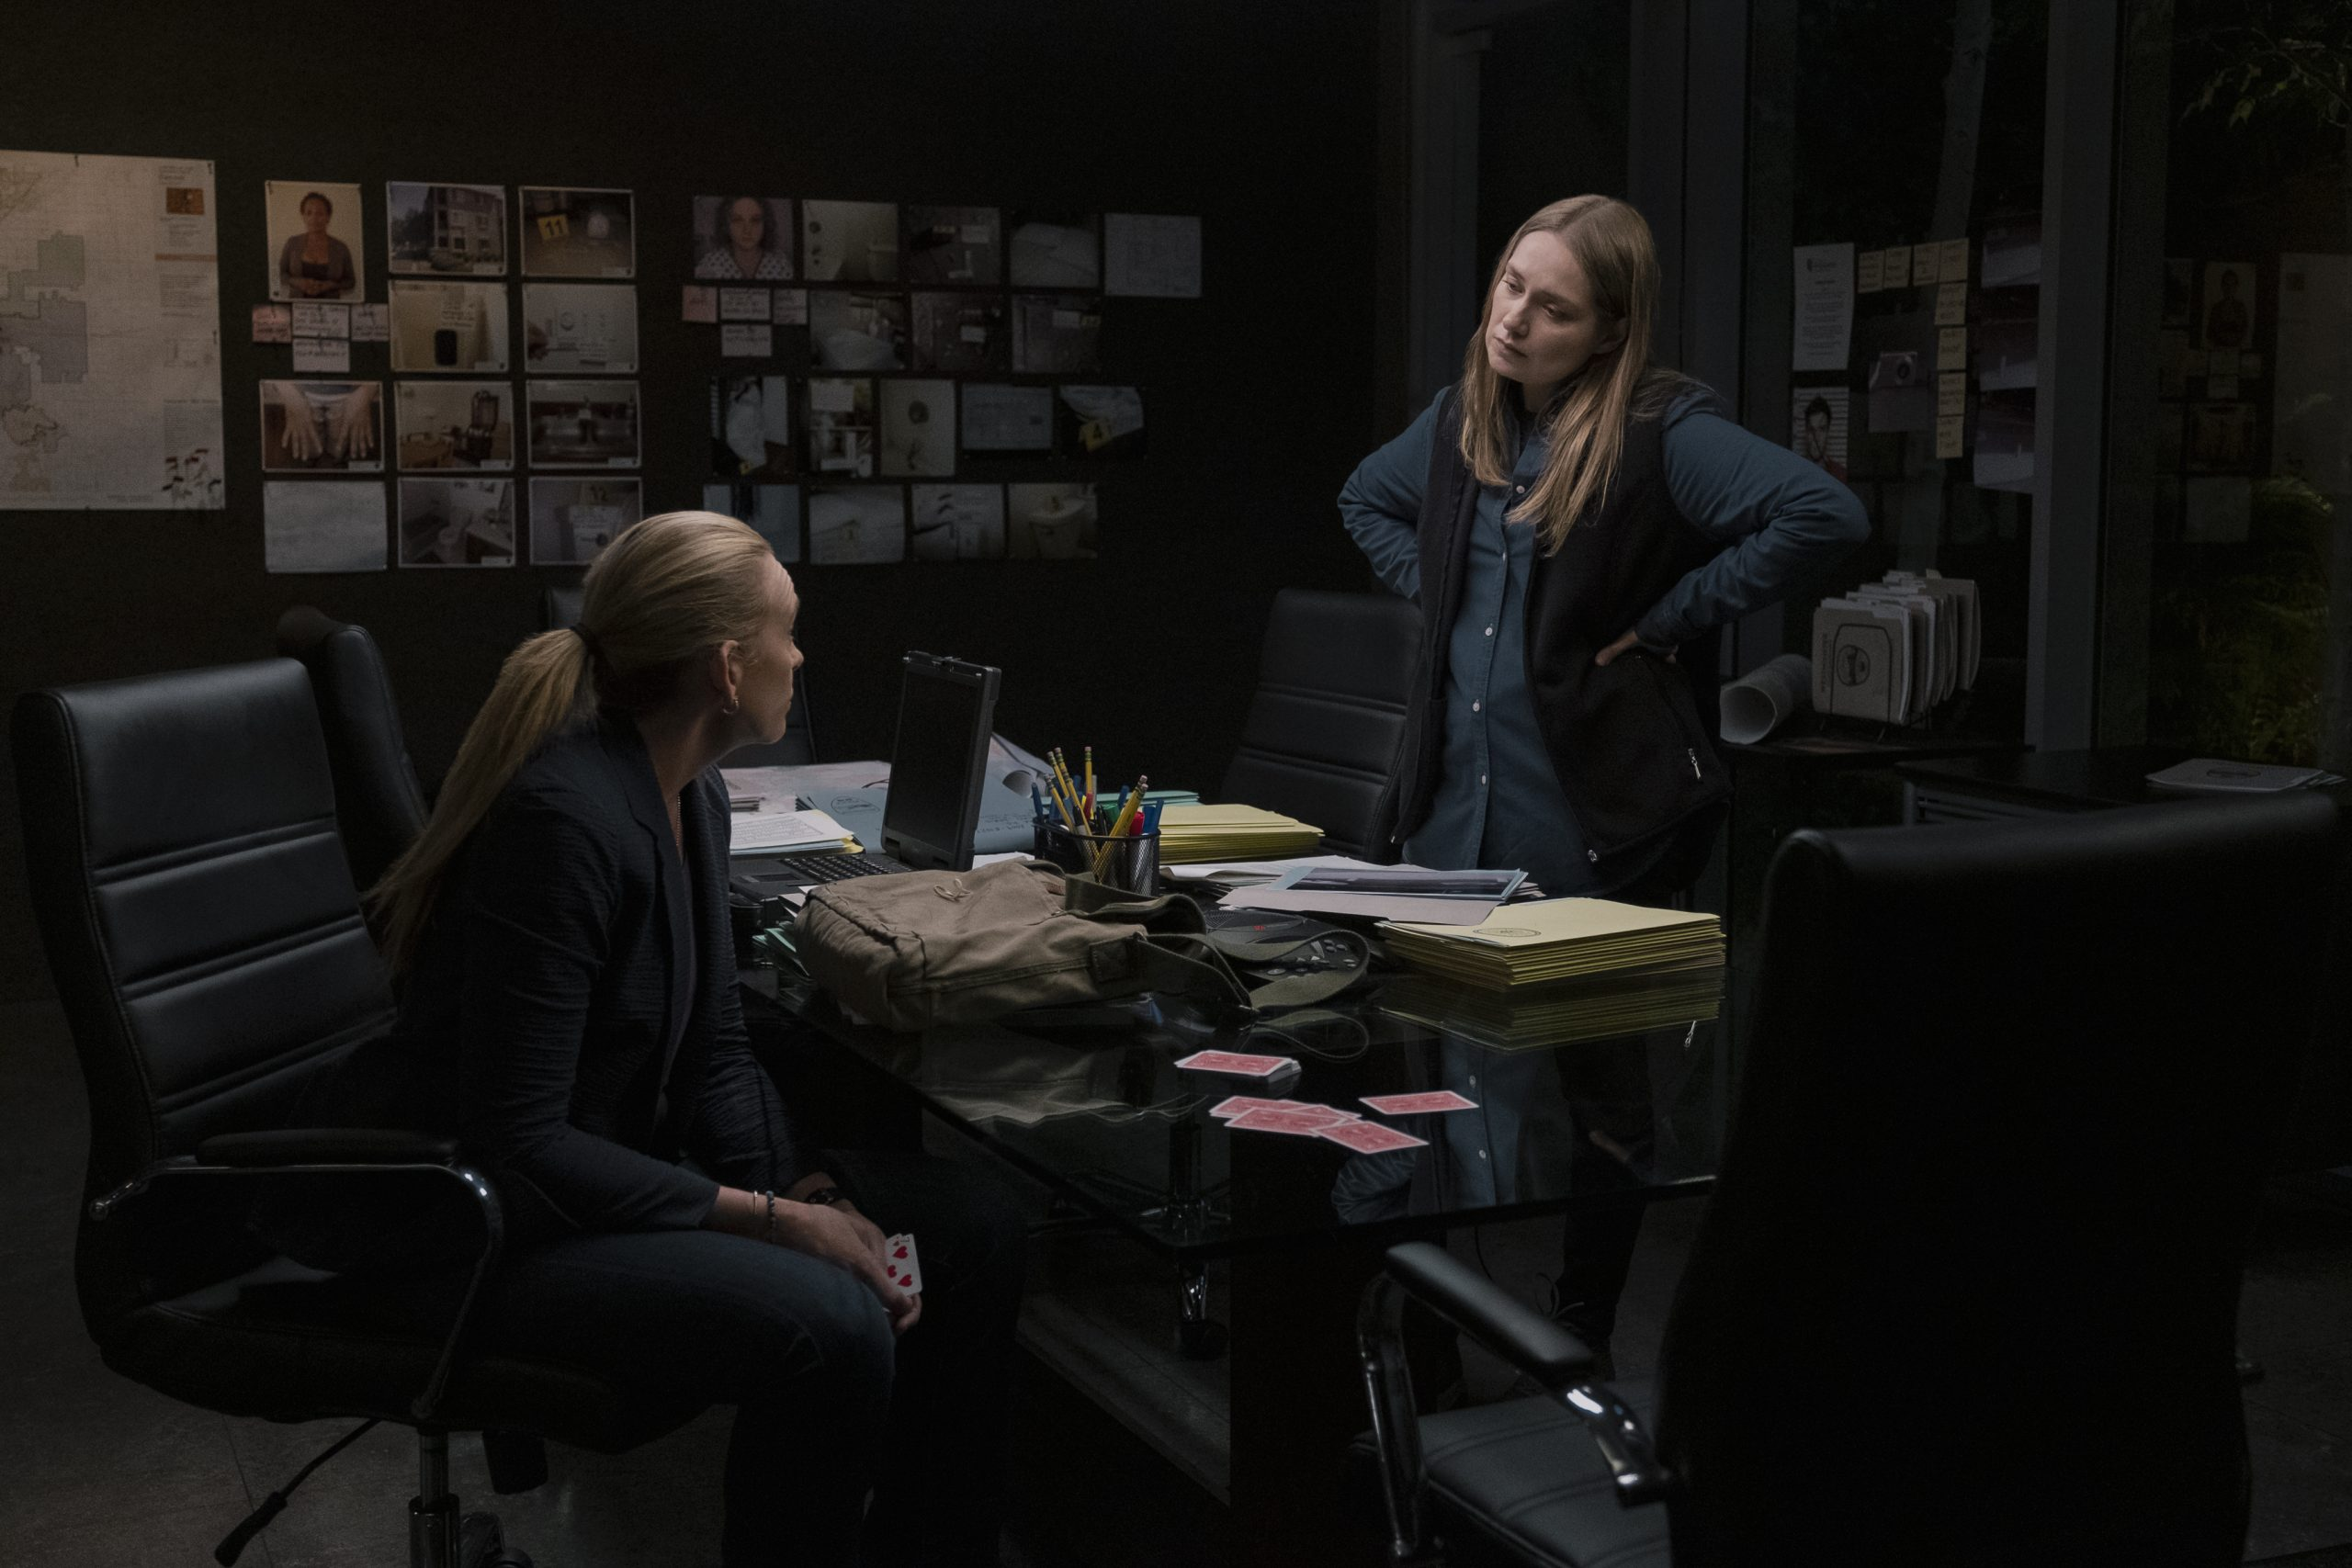 A woman is sitting at a desk inside an office and another woman is standing in front of her, discussing an investigation case